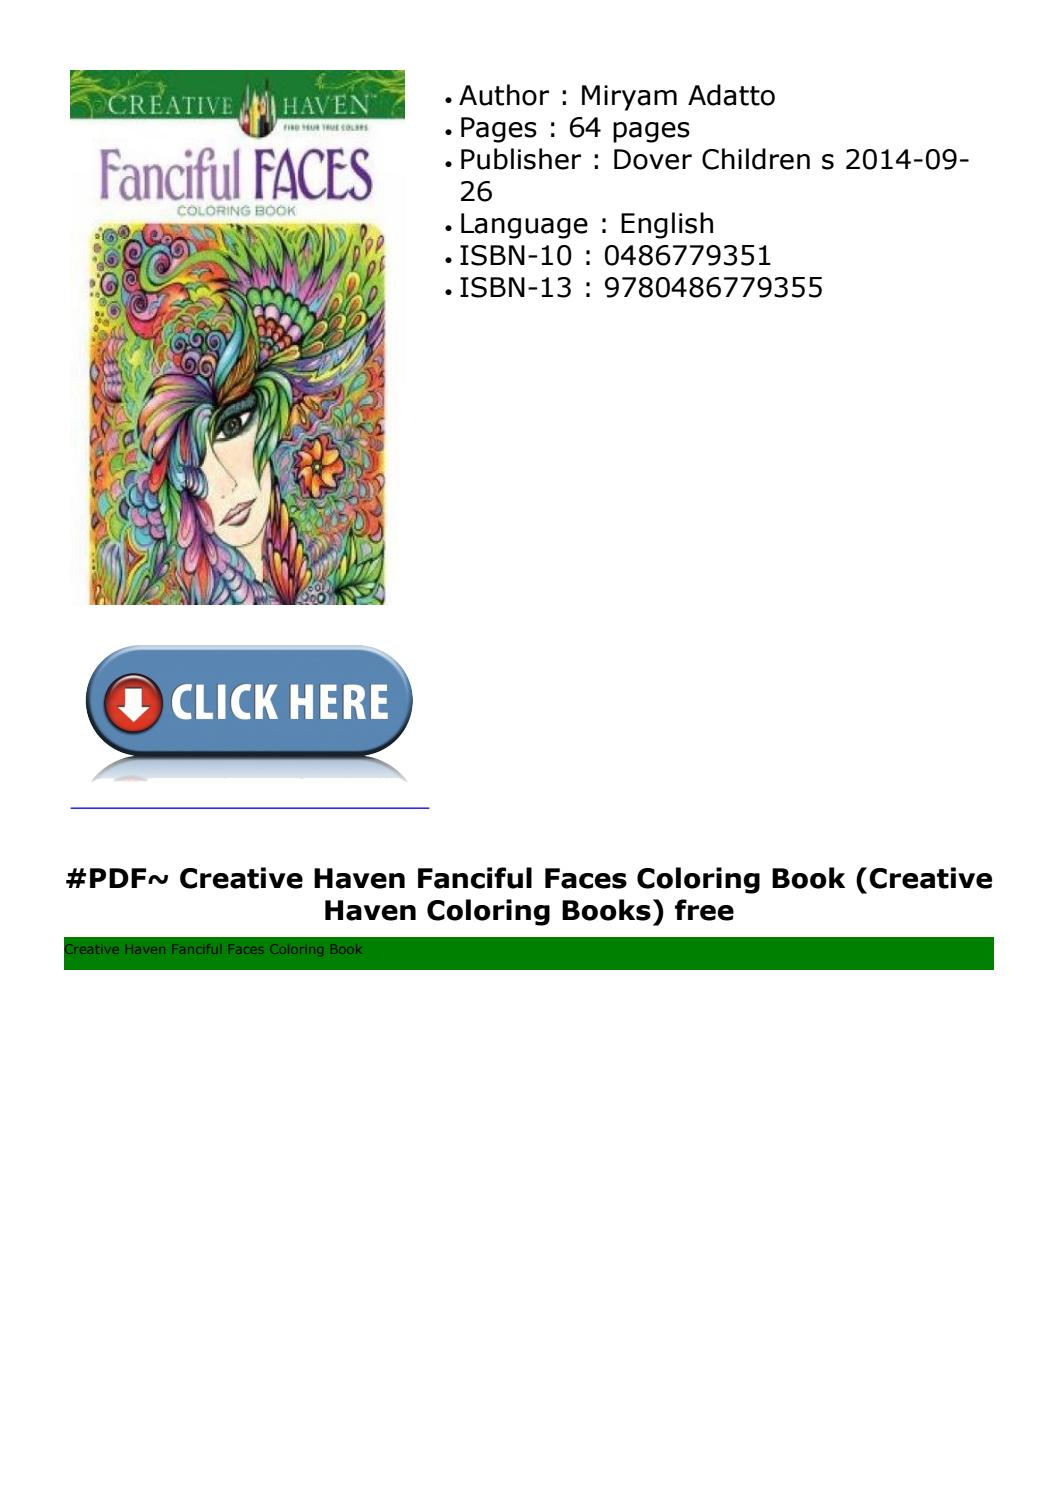 Creative Haven Fanciful Faces Coloring Book (creative Haven